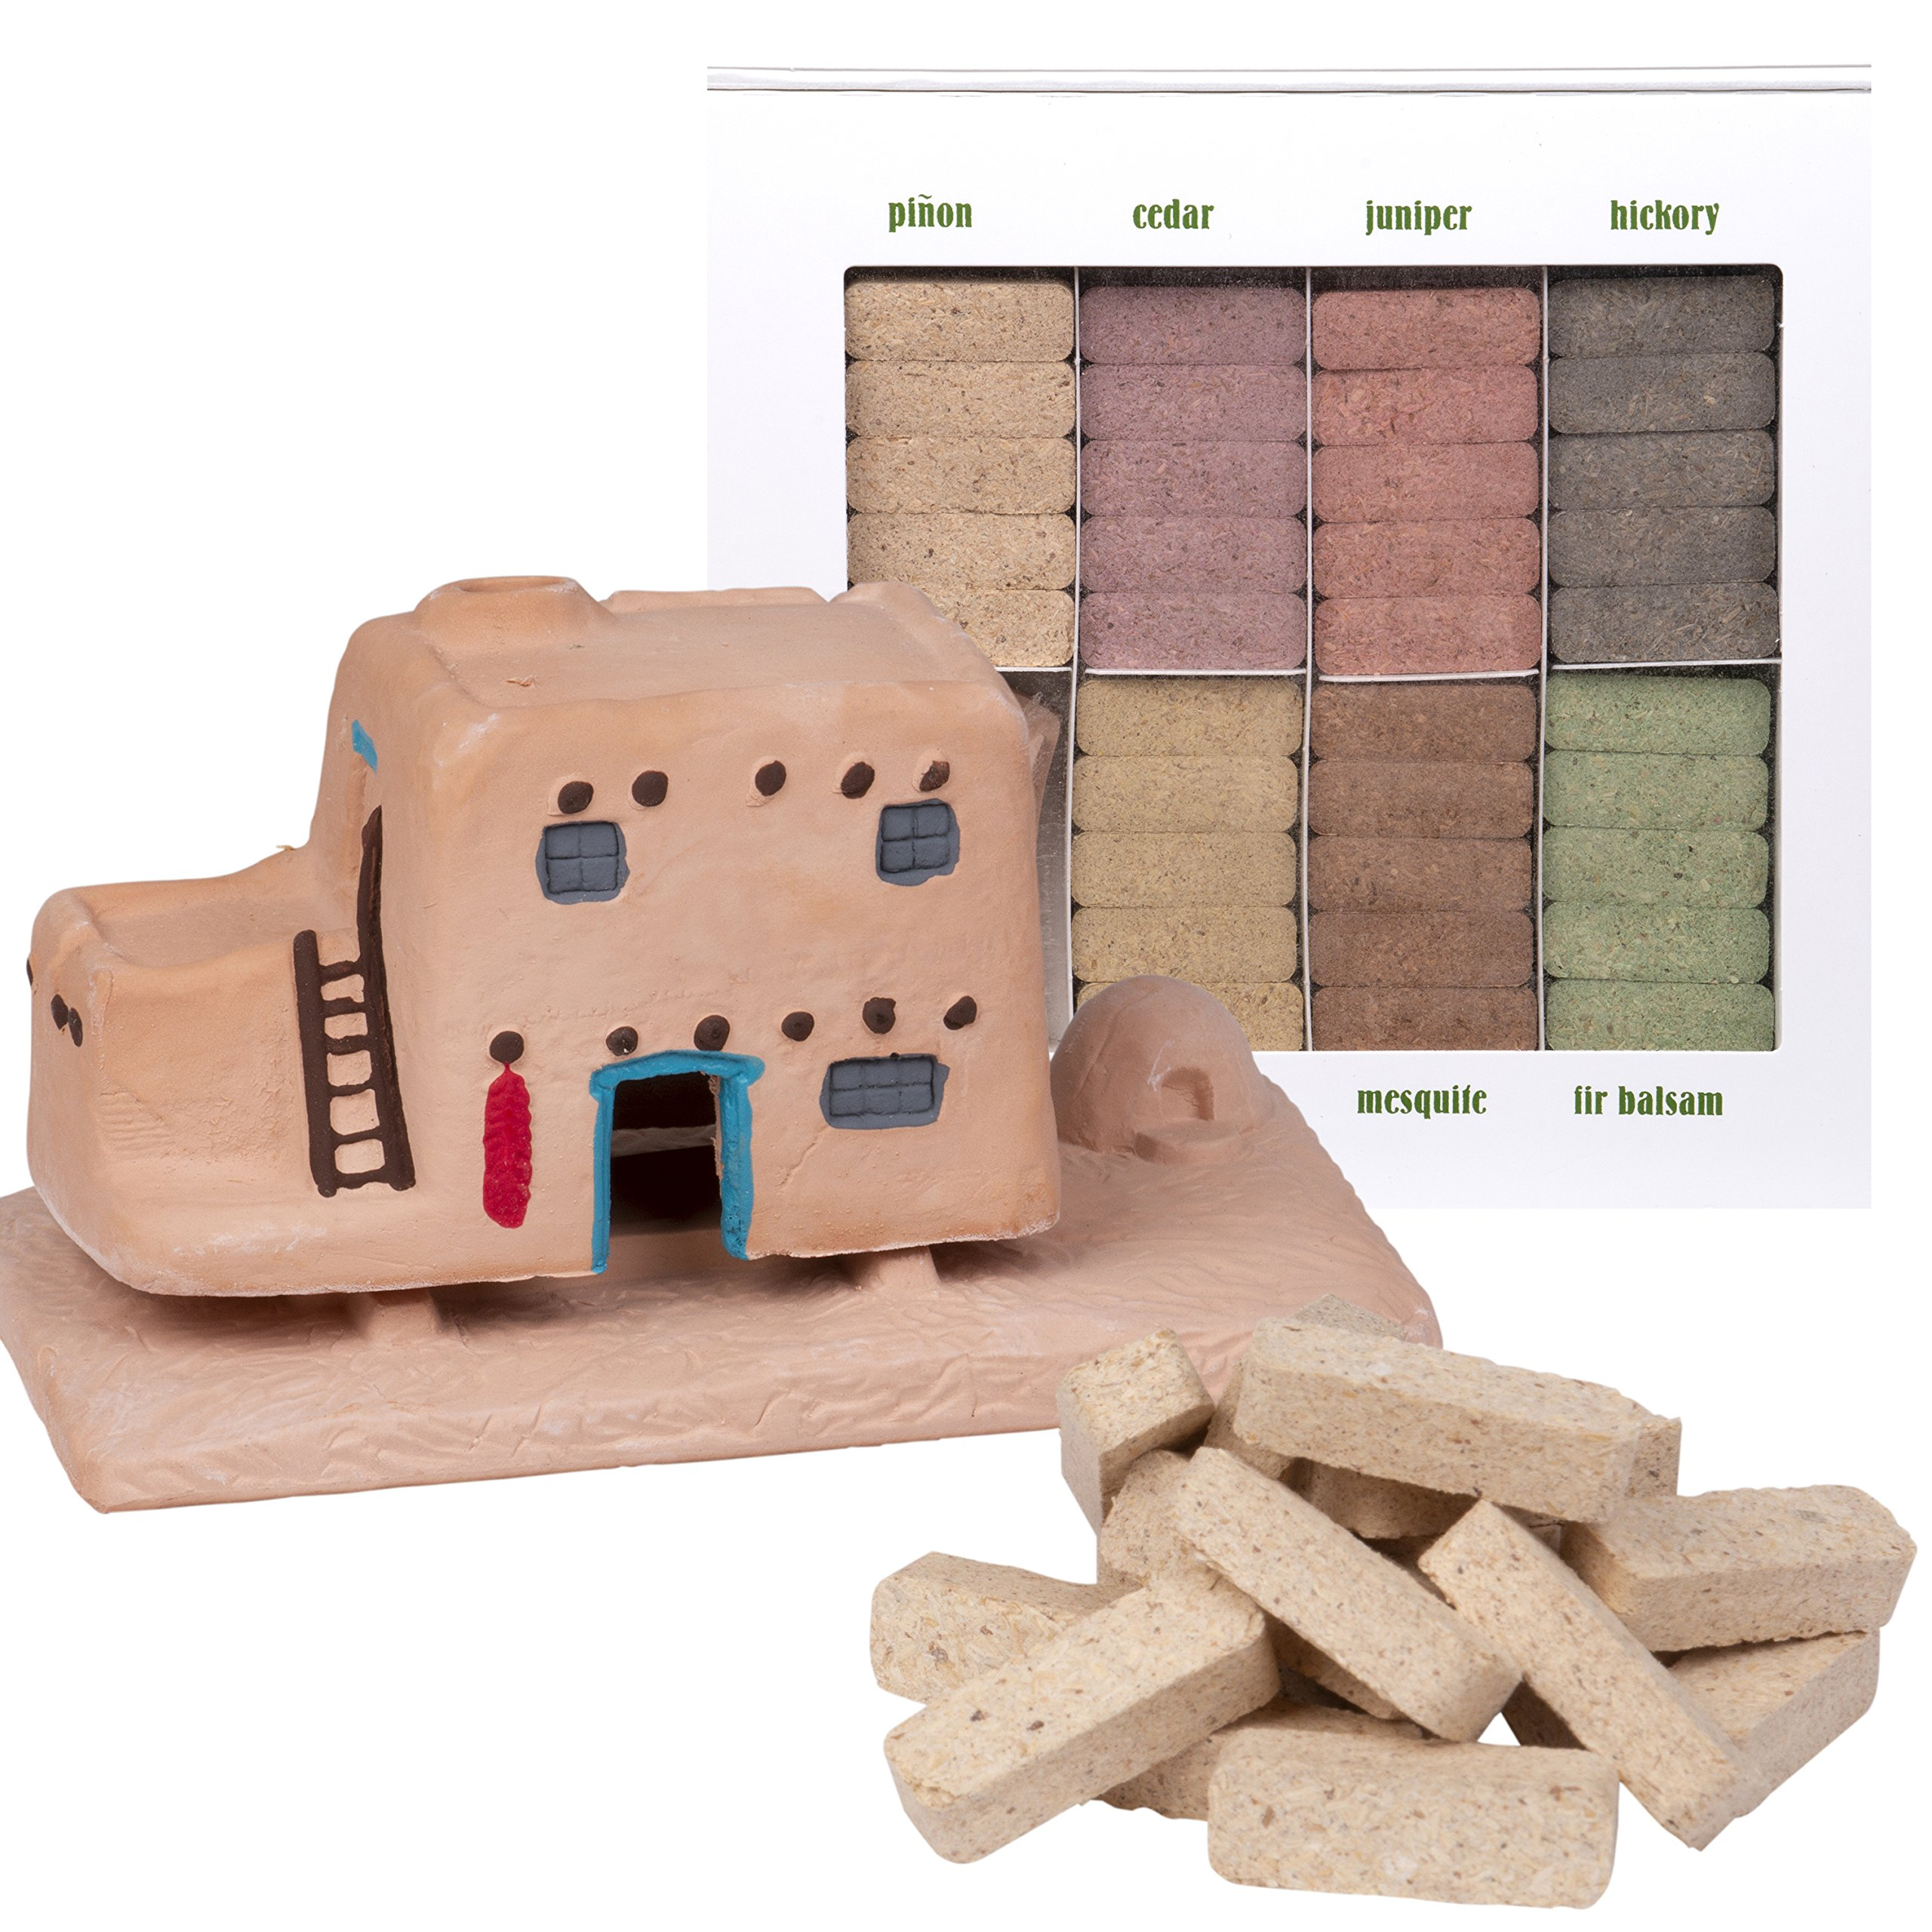 Incienso de Santa Fe Casa (Adobe House) Burner with Pinon Natural Wood Incense and 7 Scent Sampler - Made in the US